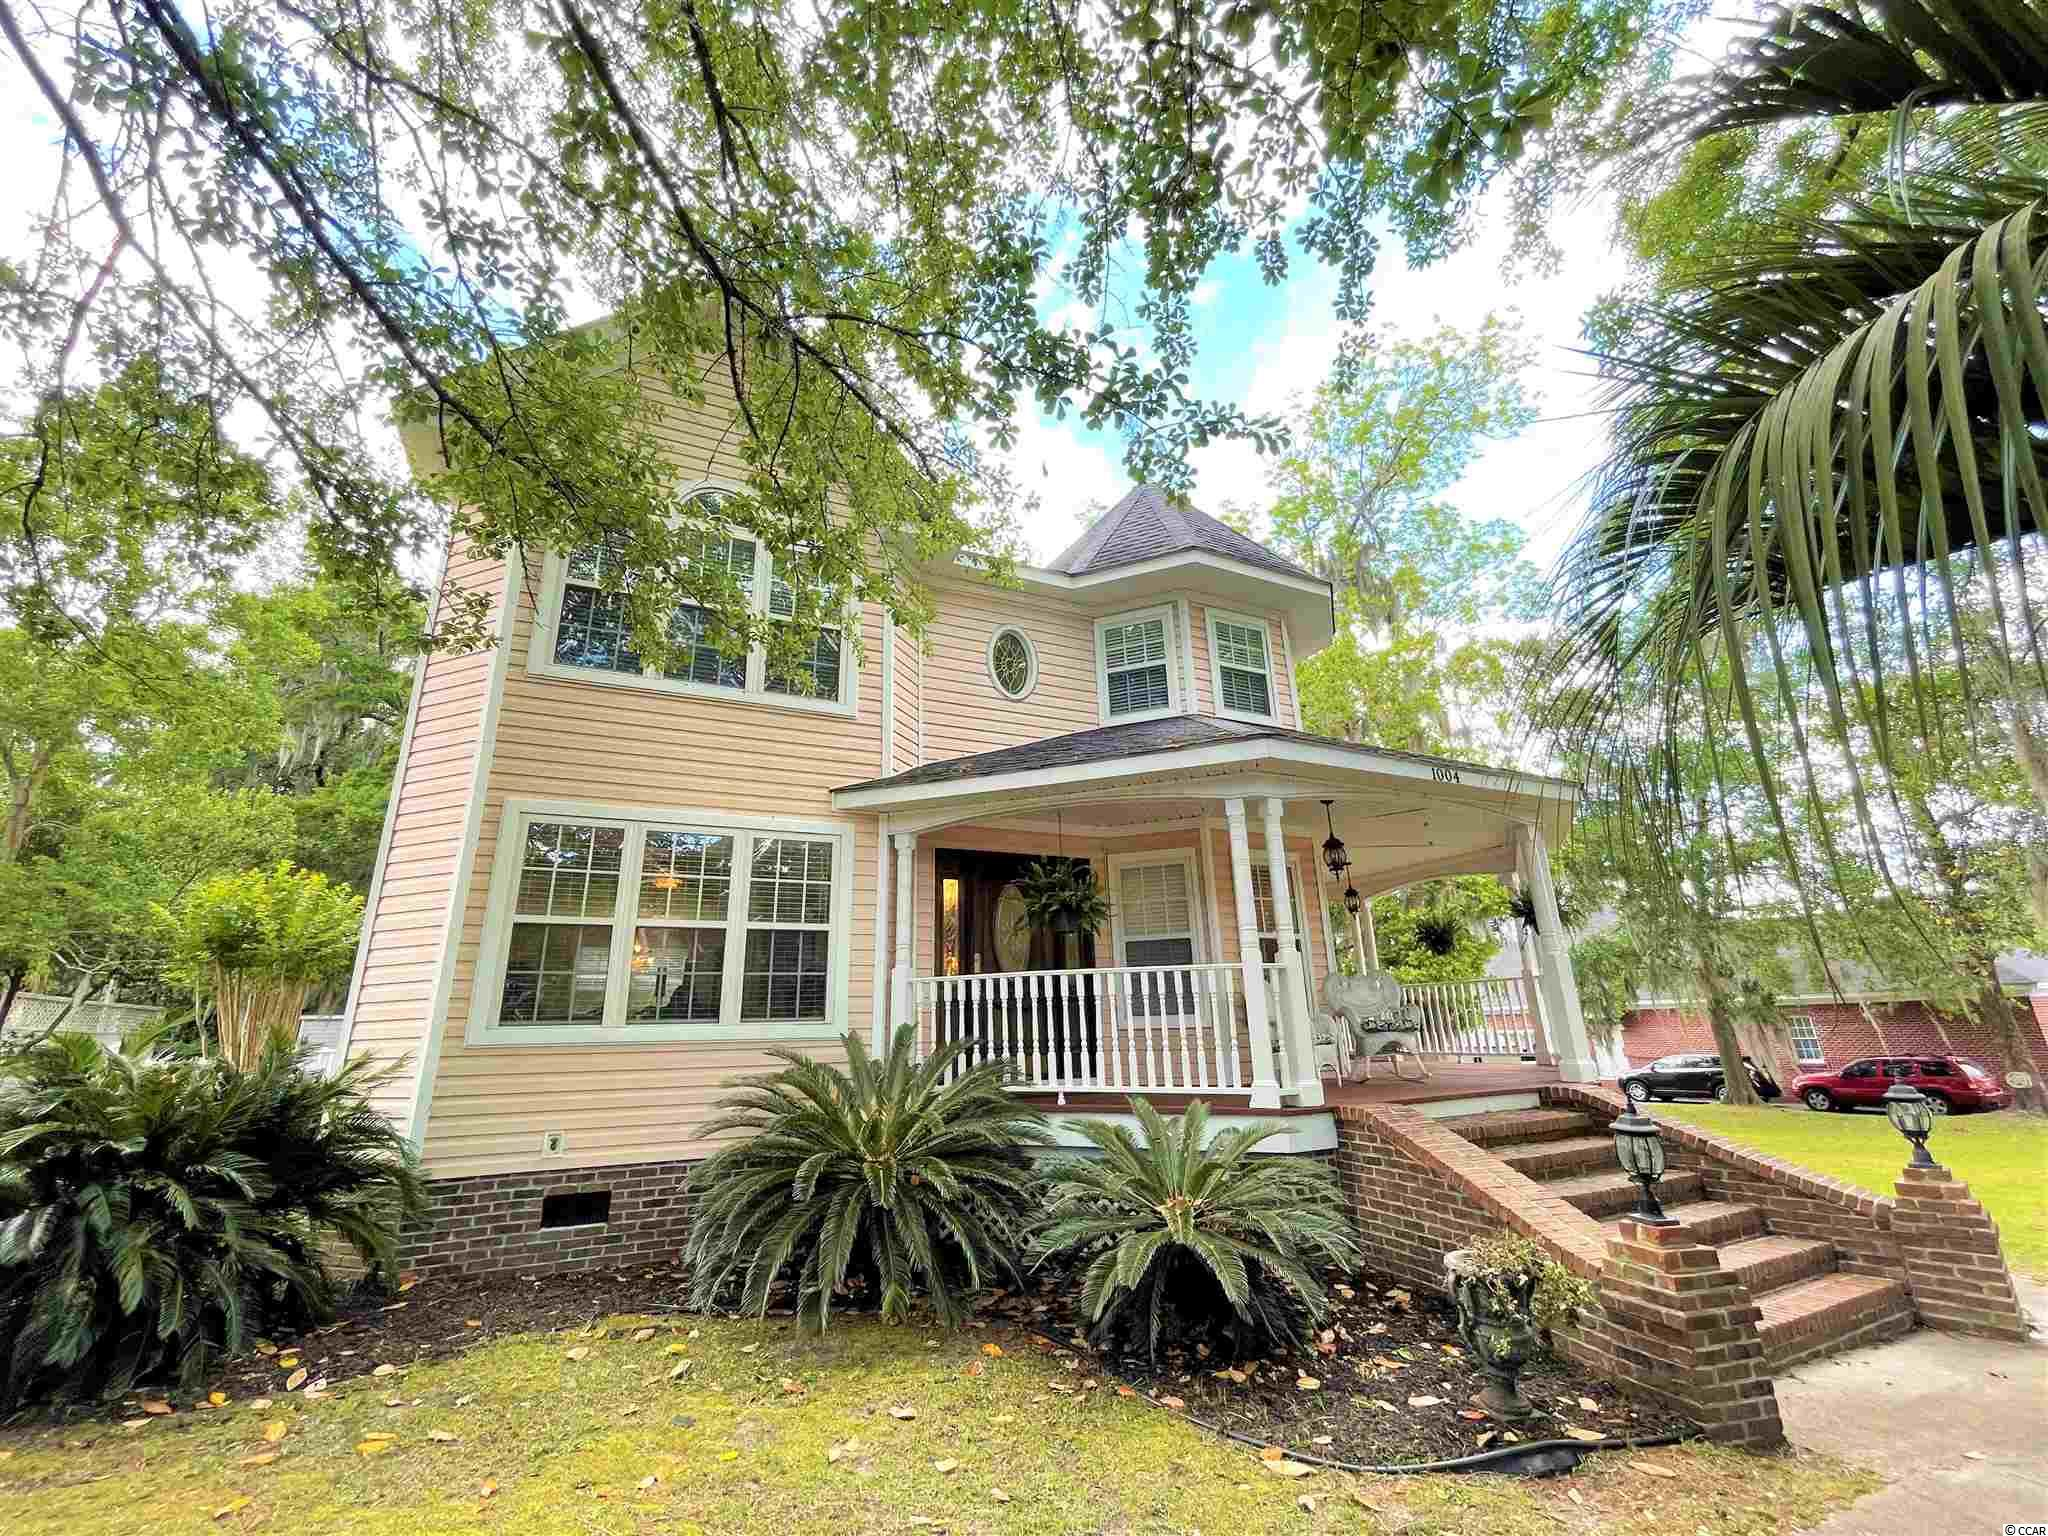 Homes in Conway's much sought after Historic District rarely come on the market. This lovely Victorian home on 0.41 acres with NO HOA has a welcoming front porch and many interior upgrades. You'll love the solid oak hardwood flooring throughout the home, smooth ceilings, new stainless appliances, custom fit blinds, and crown molding throughout. The home is ideal for entertaining with a formal dining area, spacious kitchen with breakfast nook, and bar area. Downstairs also includes a half bath and a flex space perfect for an office or craft room. The living room has a fireplace that is currently wood burning, but gas is available at the street if you wanted to convert it. Upstairs, you'll find the master suite, bedrooms 2 and 3 that share a connecting bathroom, and the laundry room. Outside you'll find a large deck and gazebo, 2 detached storage buildings, and mature oak trees. Conveniently located just 1 block to the Conway Library, and 4 blocks to downtown Conway, you can enjoy all that Conway has to offer. Shopping, dining, the Conway River Walk, and more are literally a golf cart ride, super short drive, or walk away!